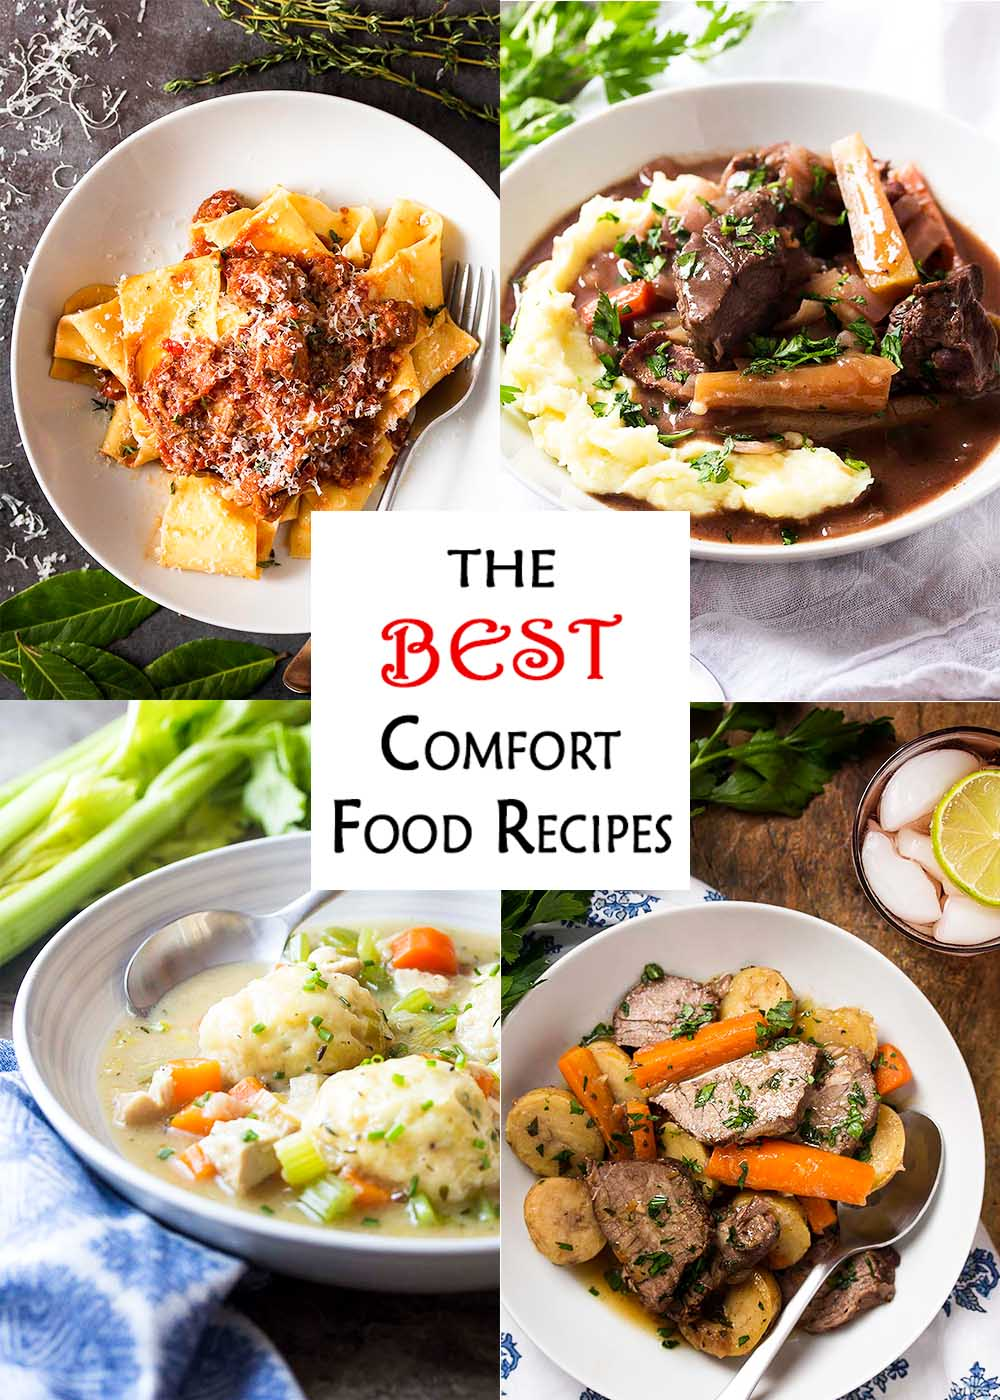 Title image showing some of the best comfort food recipes as listed in the post.